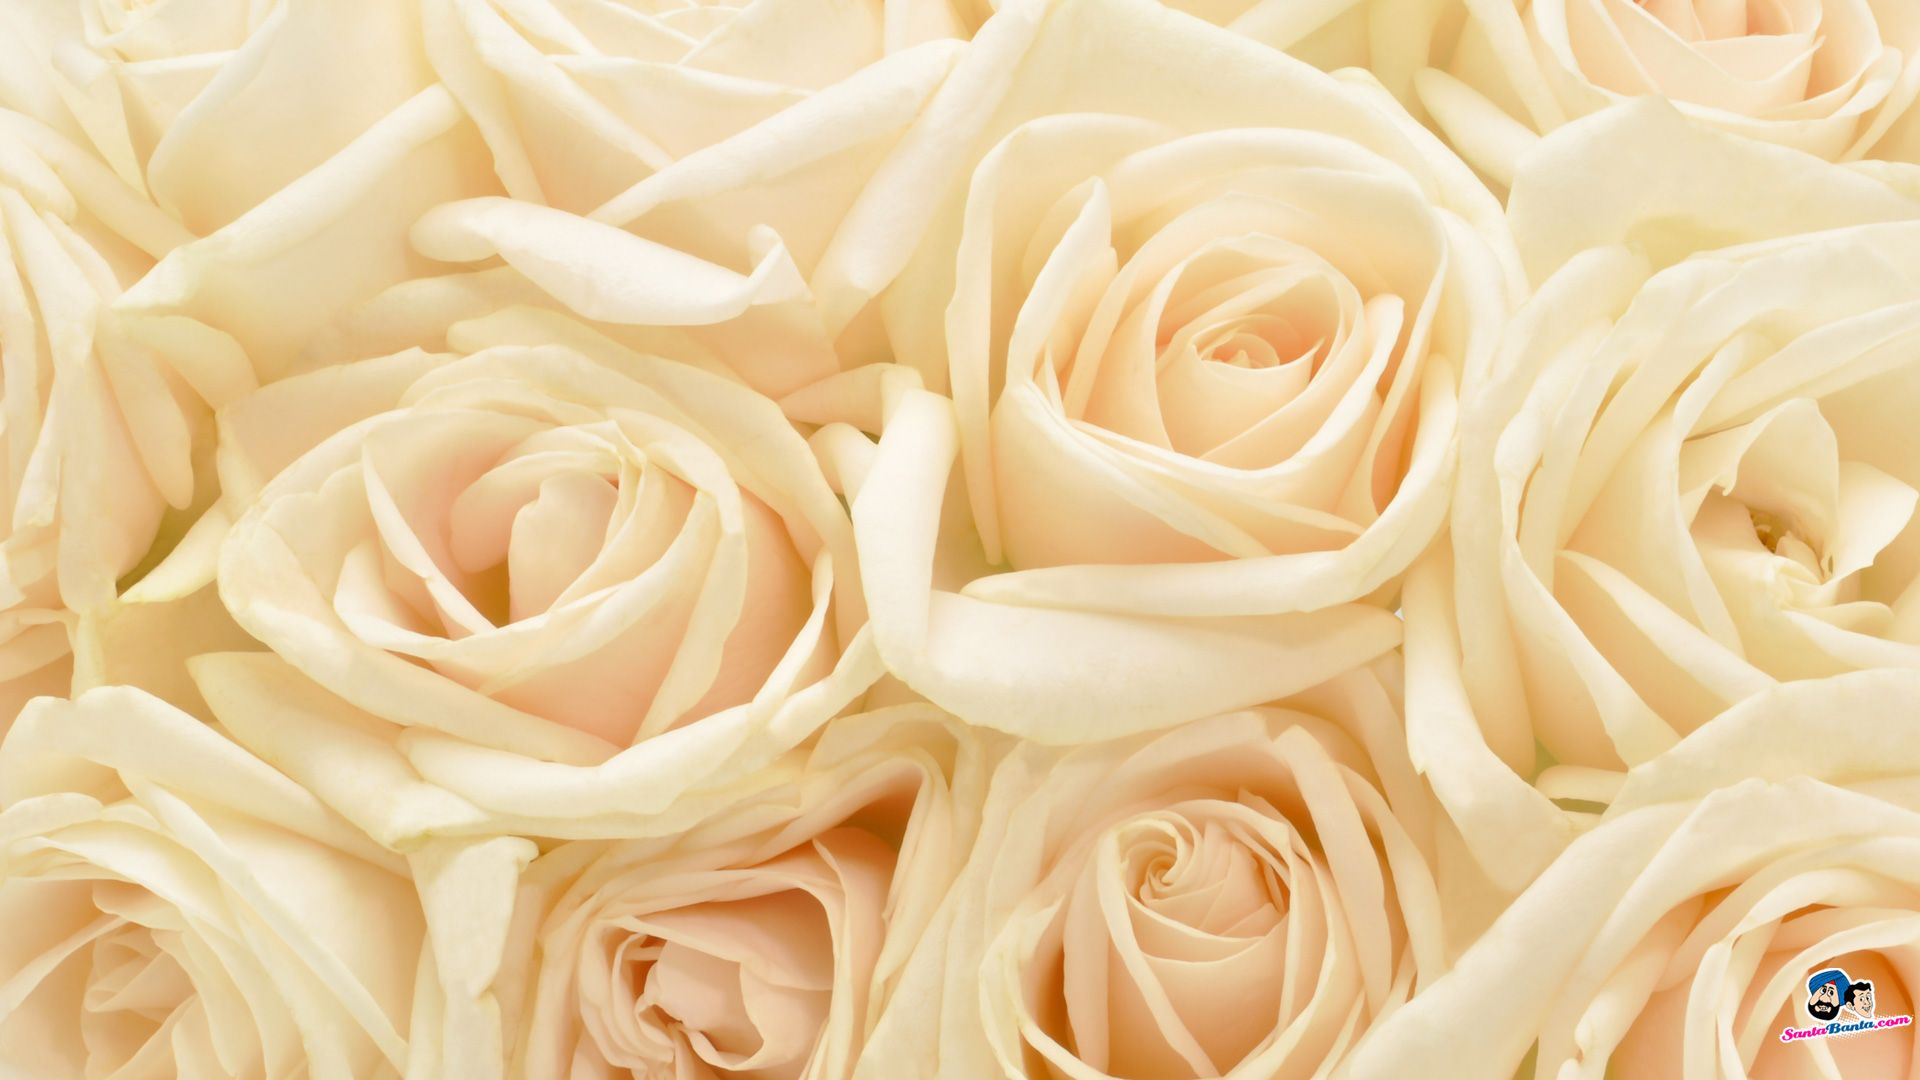 White Rose Red Roses Wallpapers For Iphone 5 HQ Backgrounds